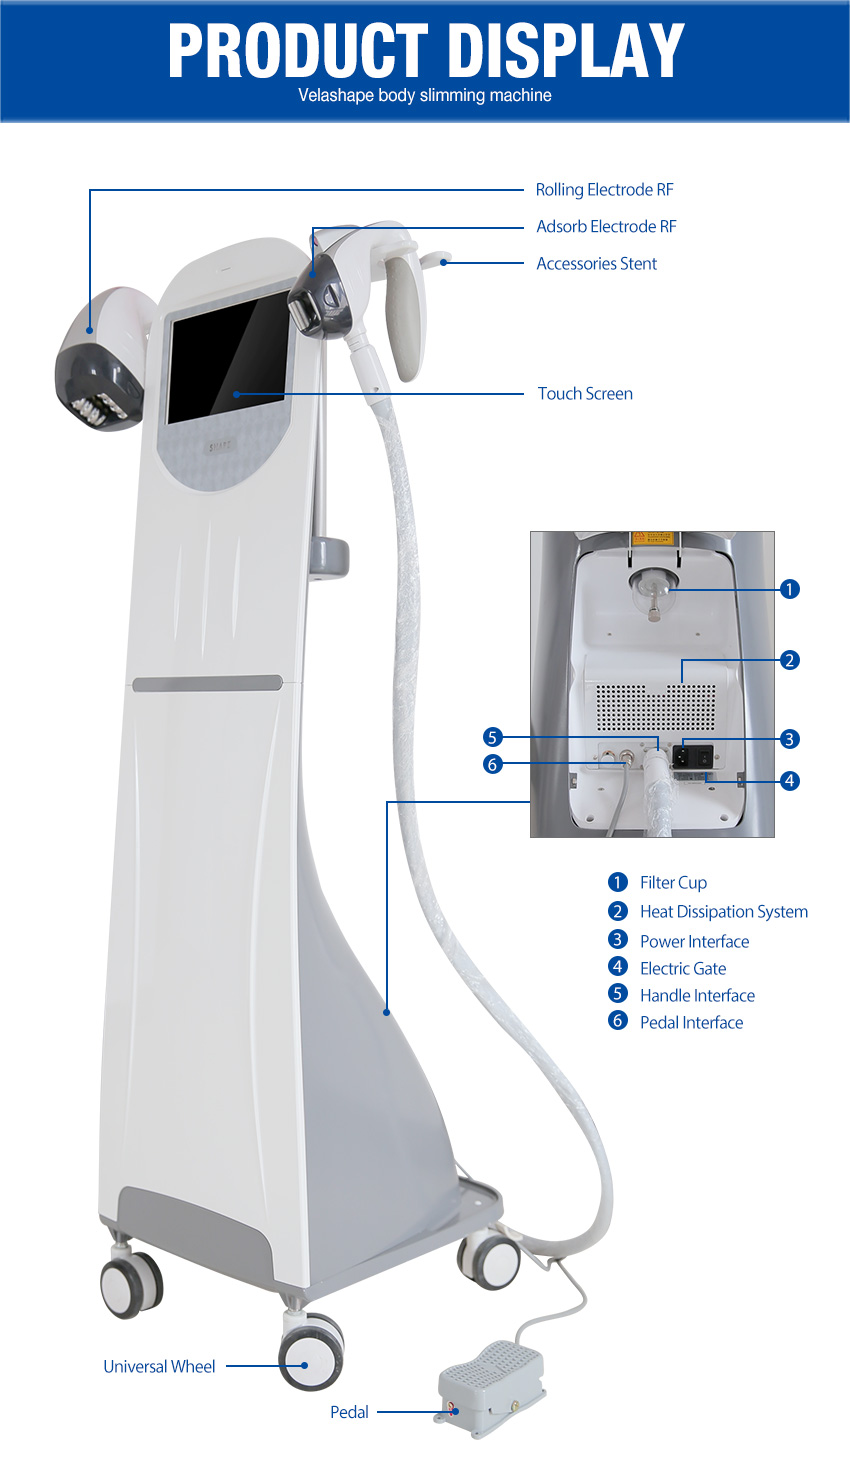 velashape machine details